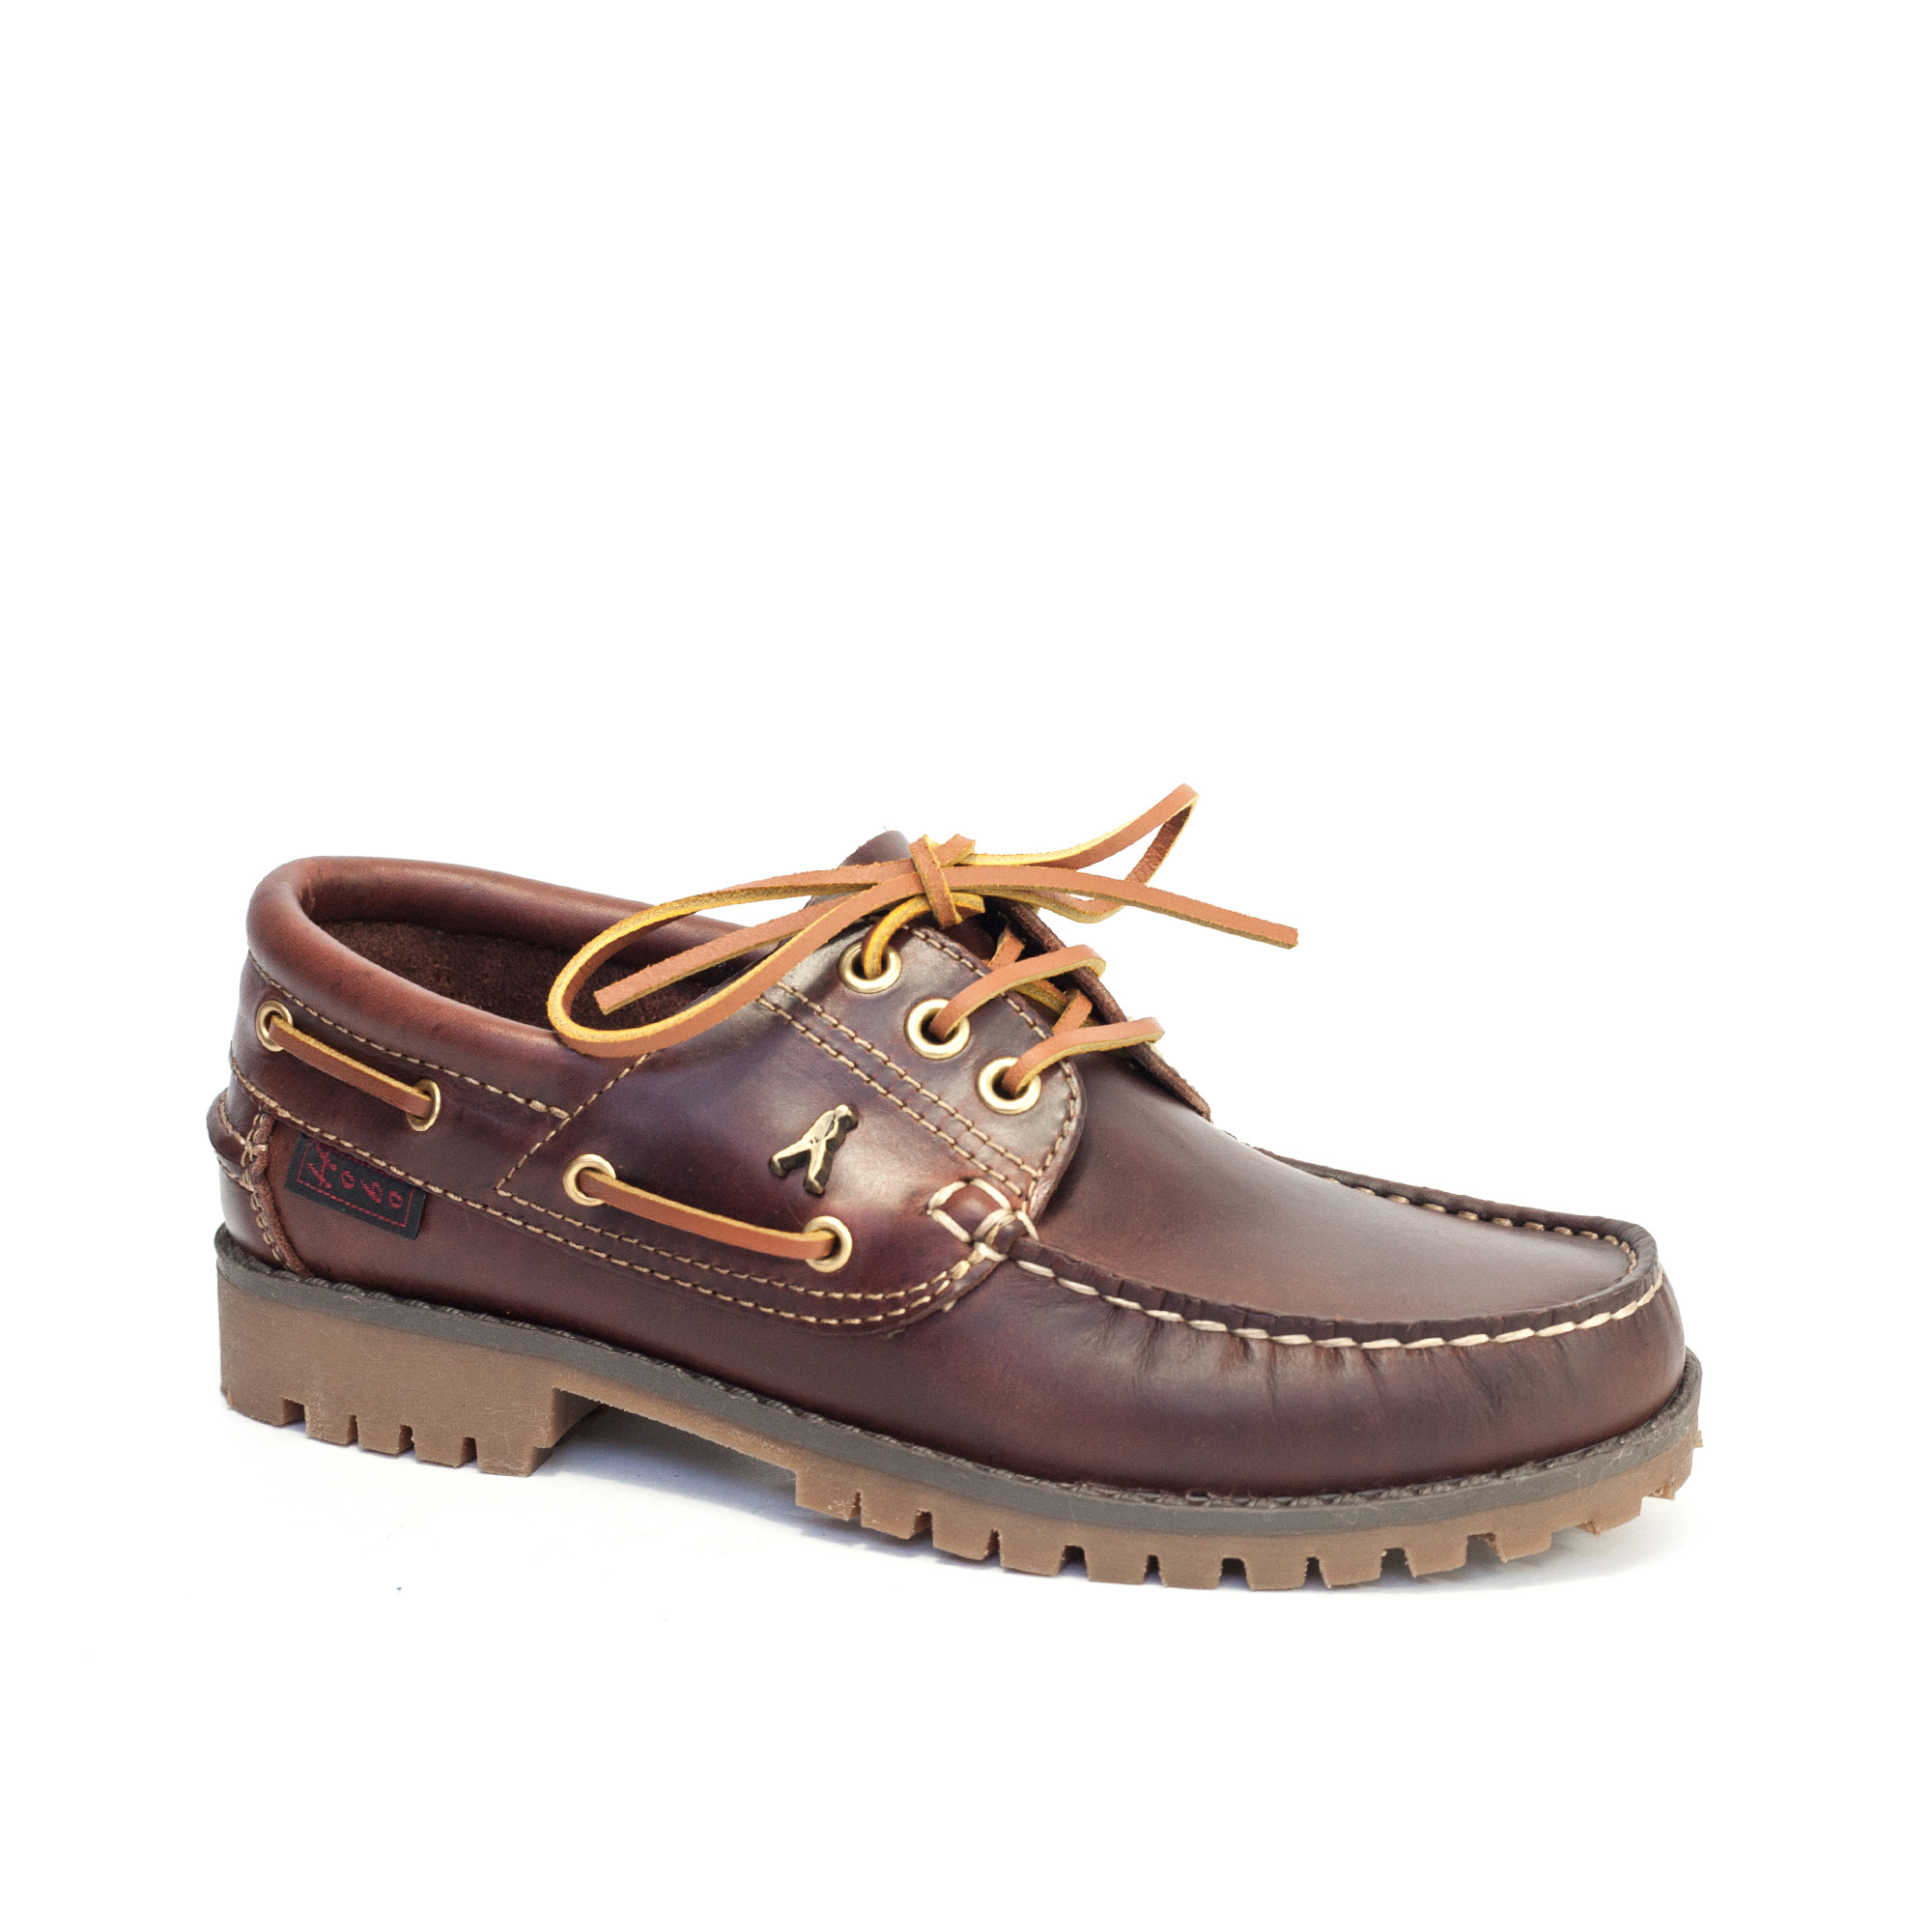 Aetna Bootsschuh texas brown